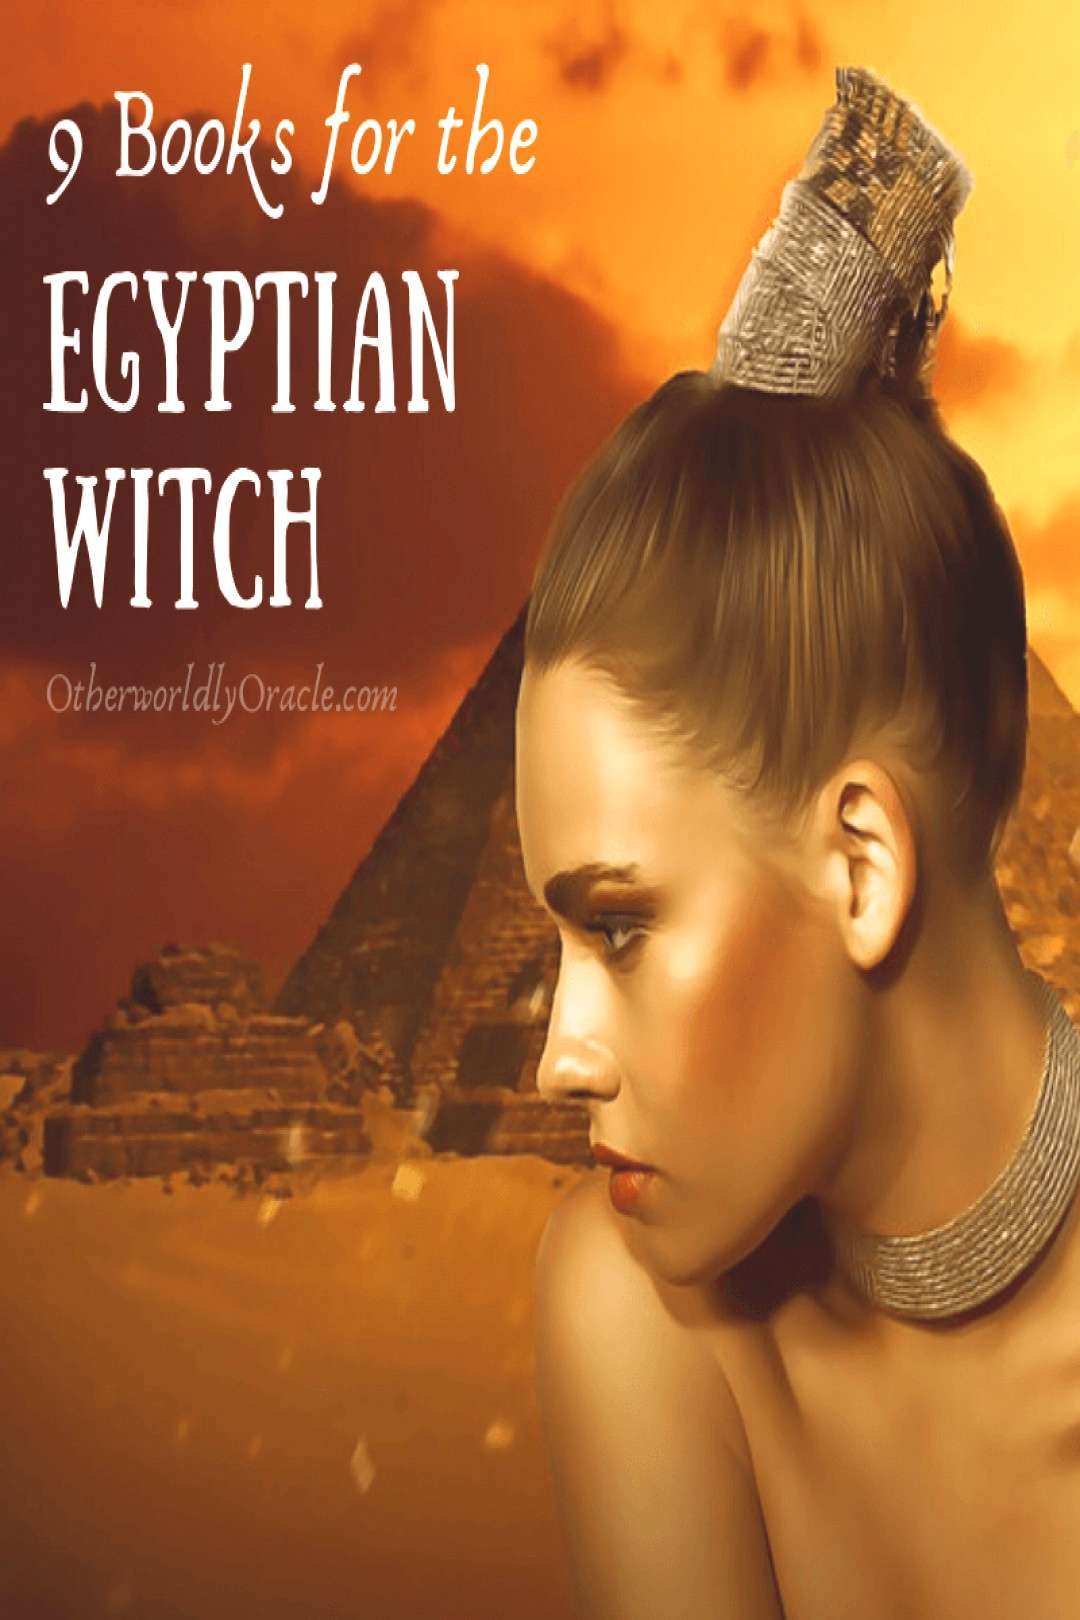 Looking to add Egyptian magick into your practice? Heres 9 must-read books for the Egyptian witch